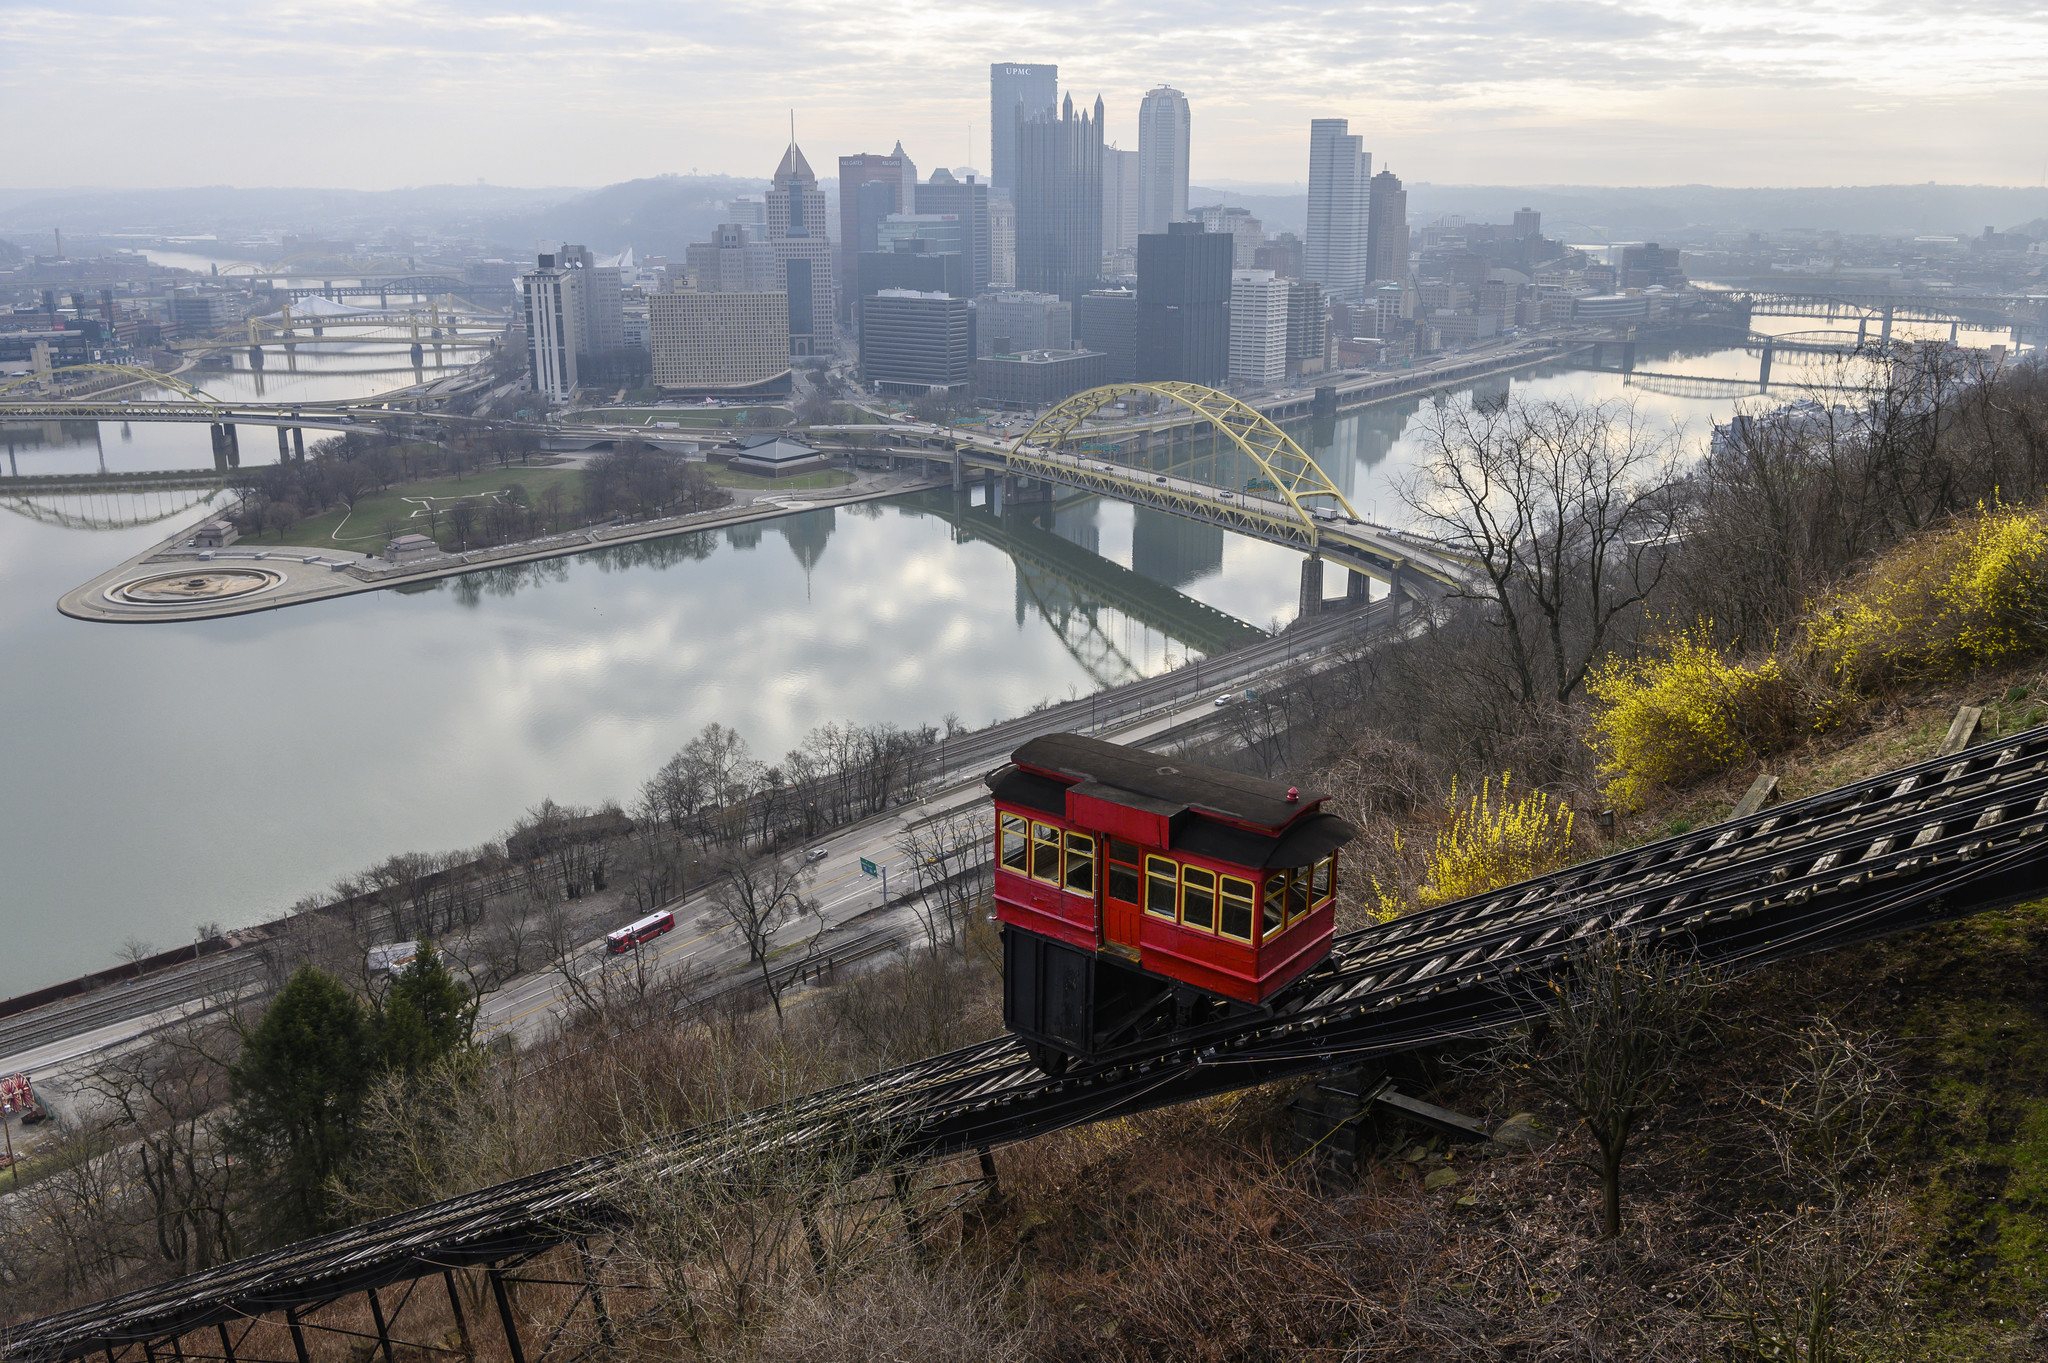 What to eat, drink and do in Pittsburgh